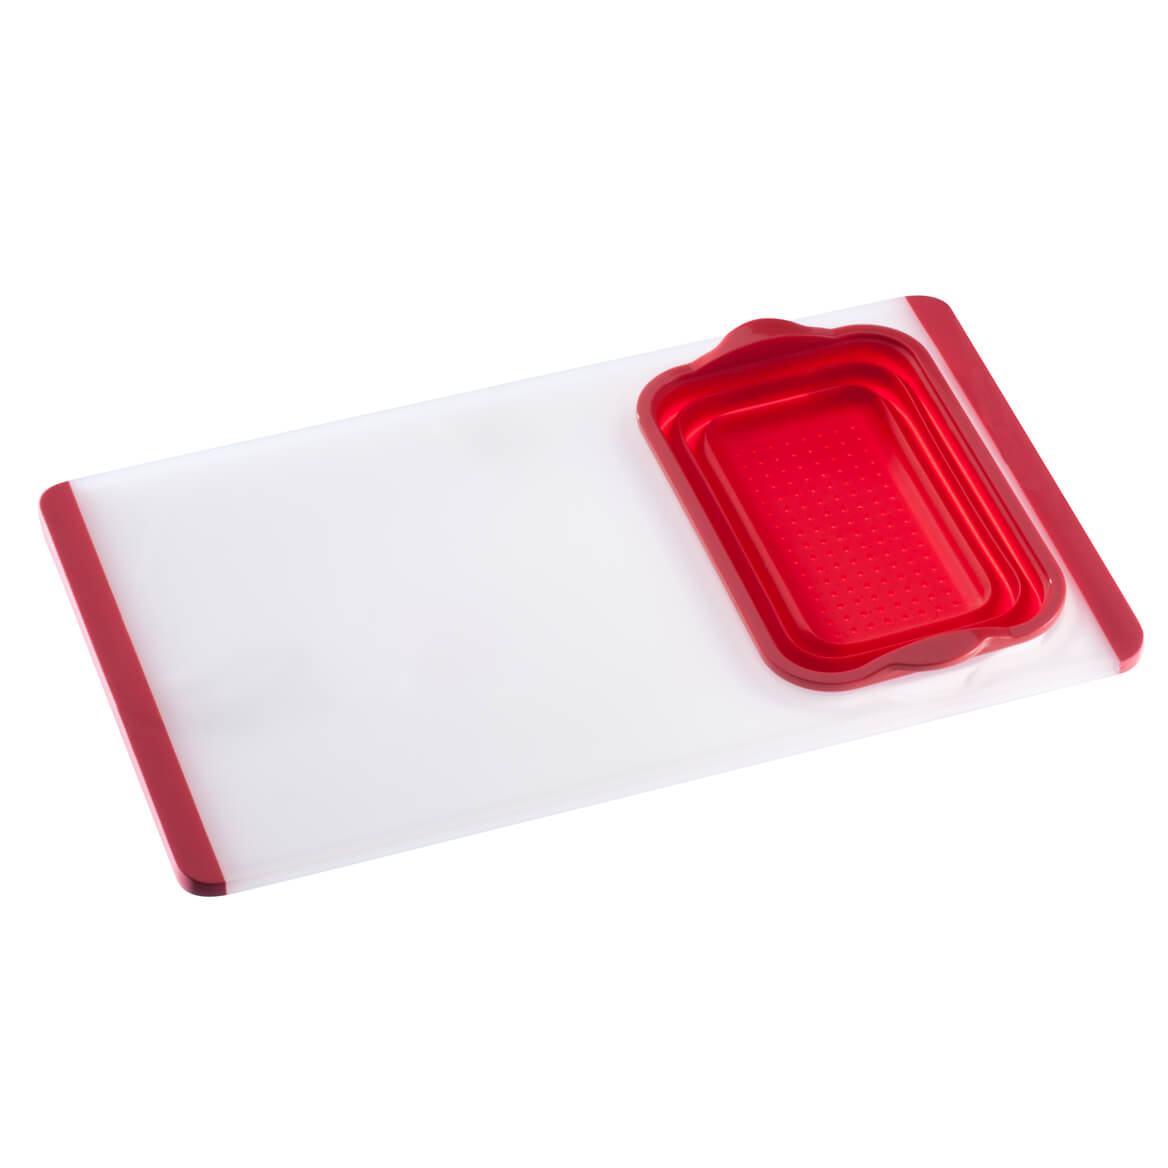 Cuisinart Cutting Board with Colander